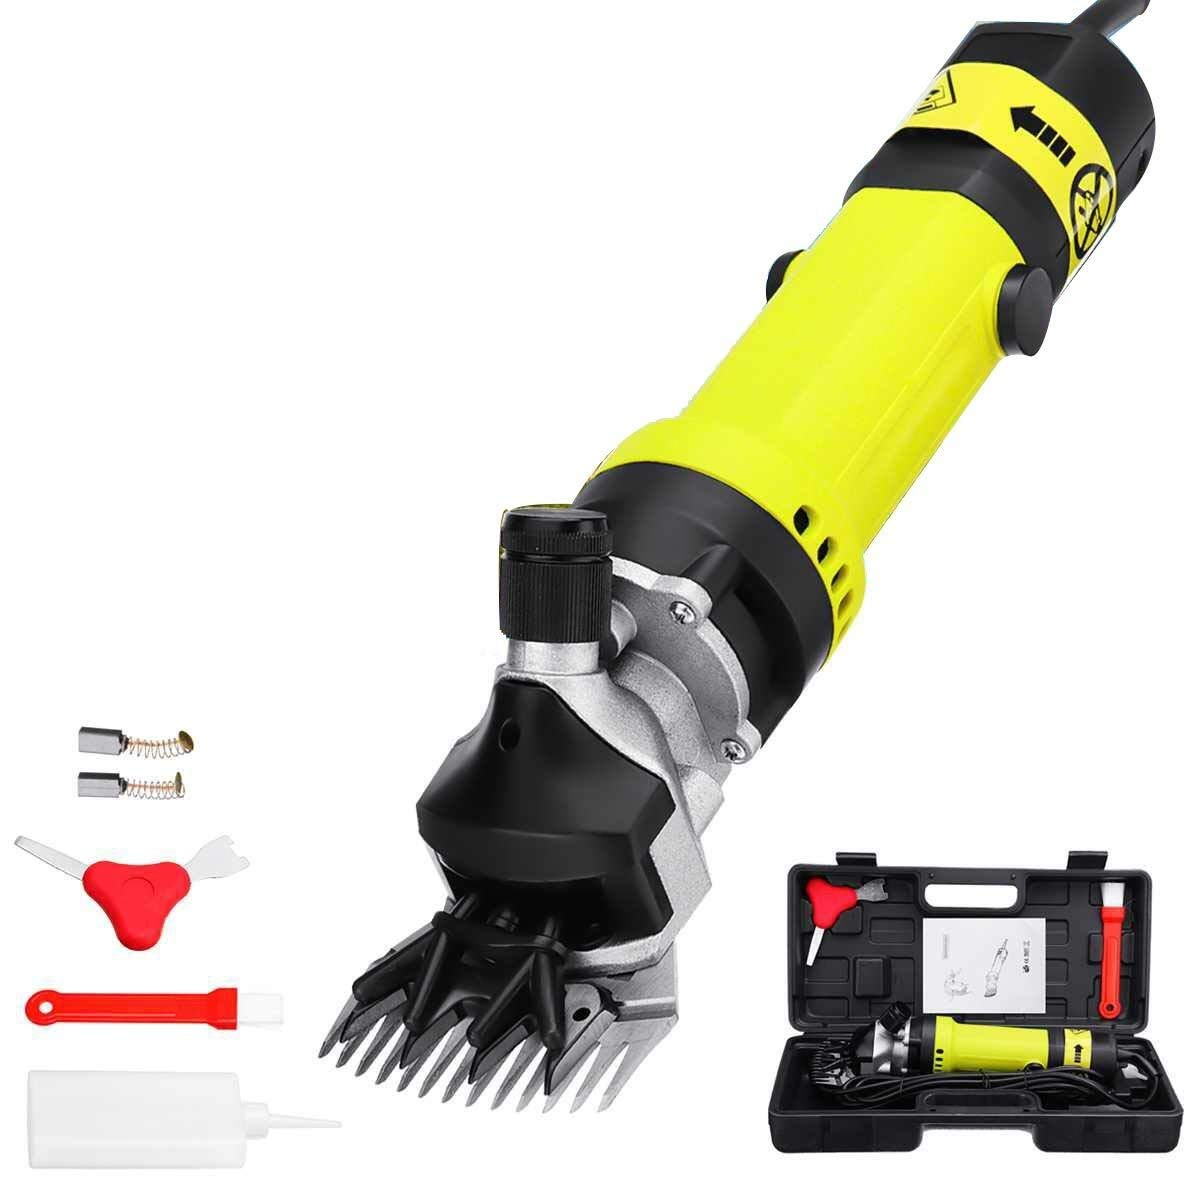 XGG-tool Powerful Electric Sheep Shearing Clippers Shears 320W Animal Grooming Clippers - Goat Shearing Clippers Wireless Trimmer for Goats/Alpaca/Llamas/Angora (13 Straight Teeth Blade) by XGG-tool